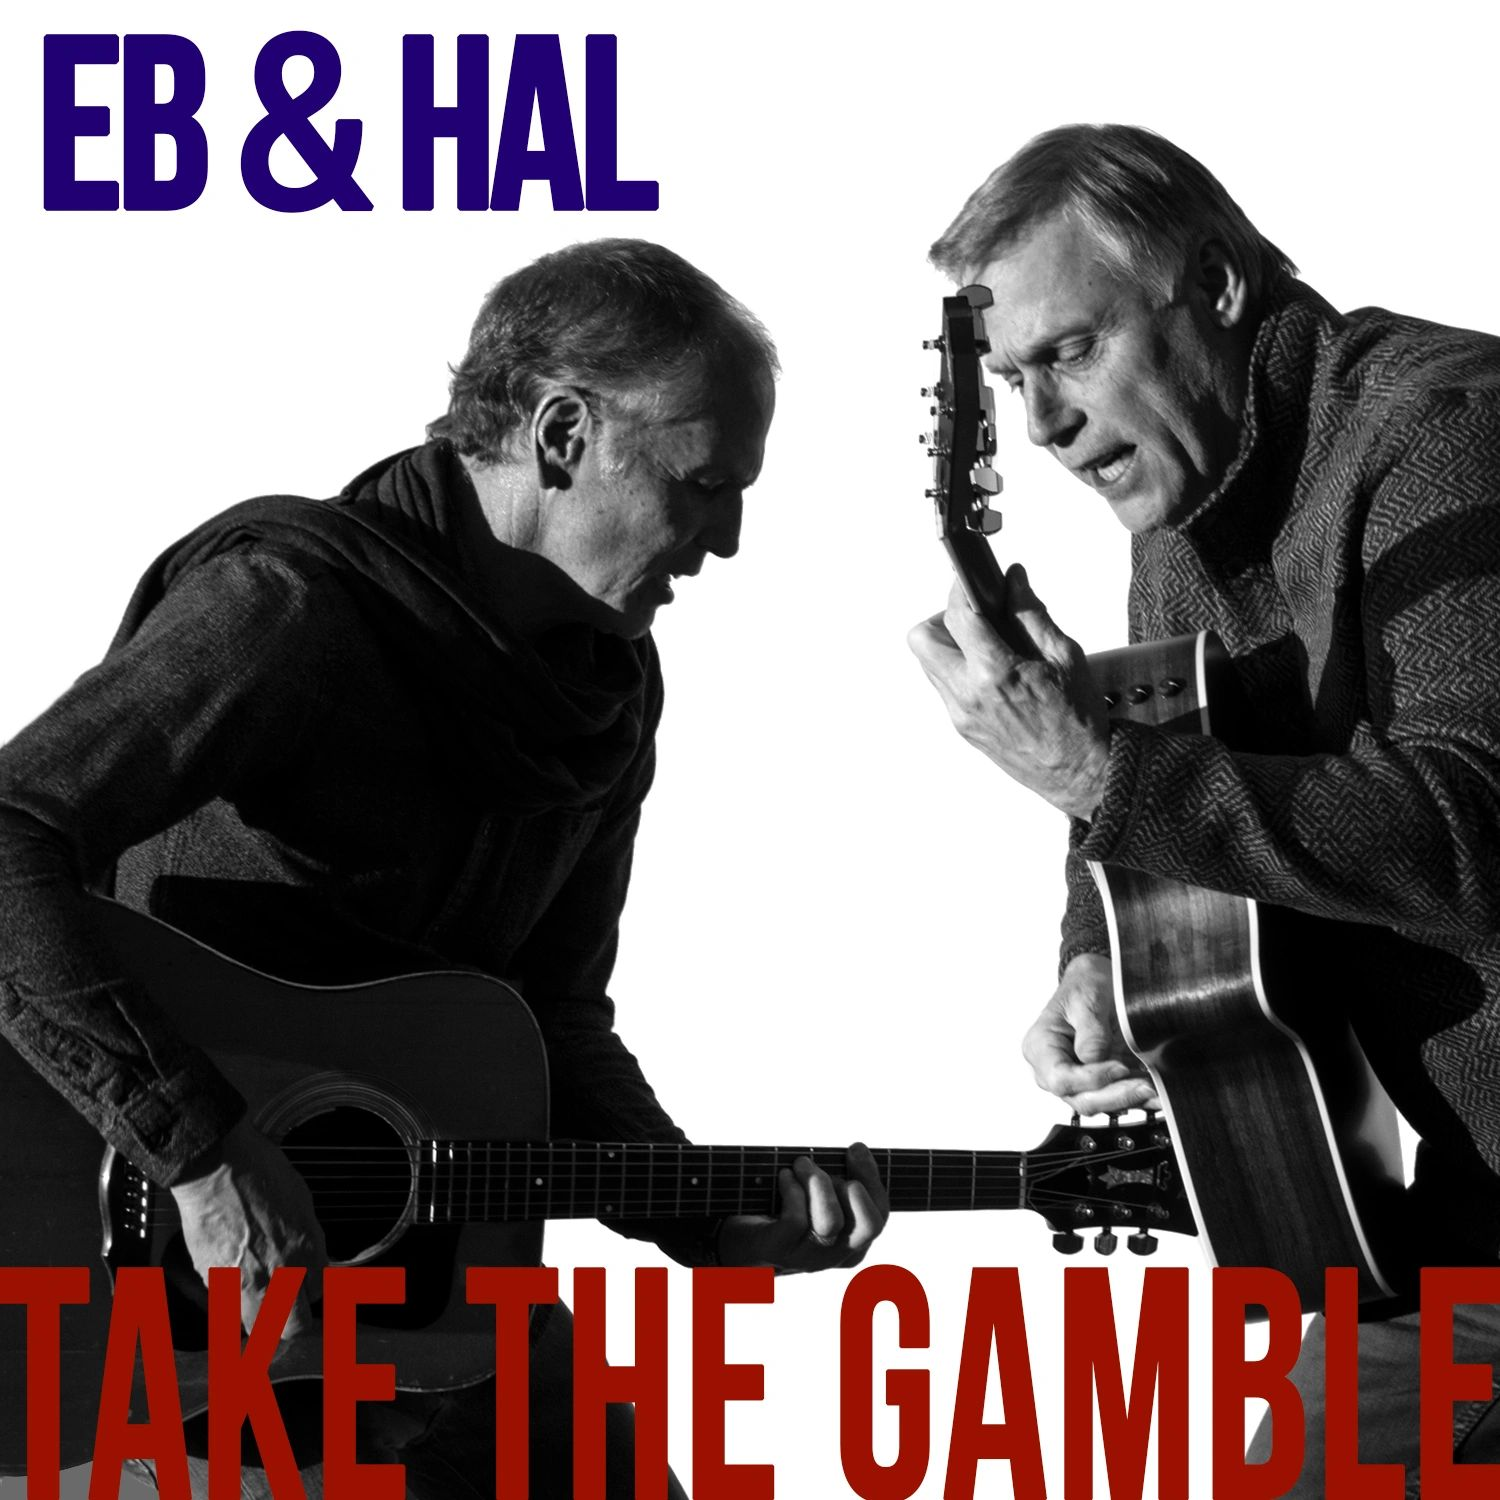 Eb & Hal: Take the Gamble Nominated for 3 awards: TAKE THE GAMBLE  CRAZY  I'M MISSING YOU